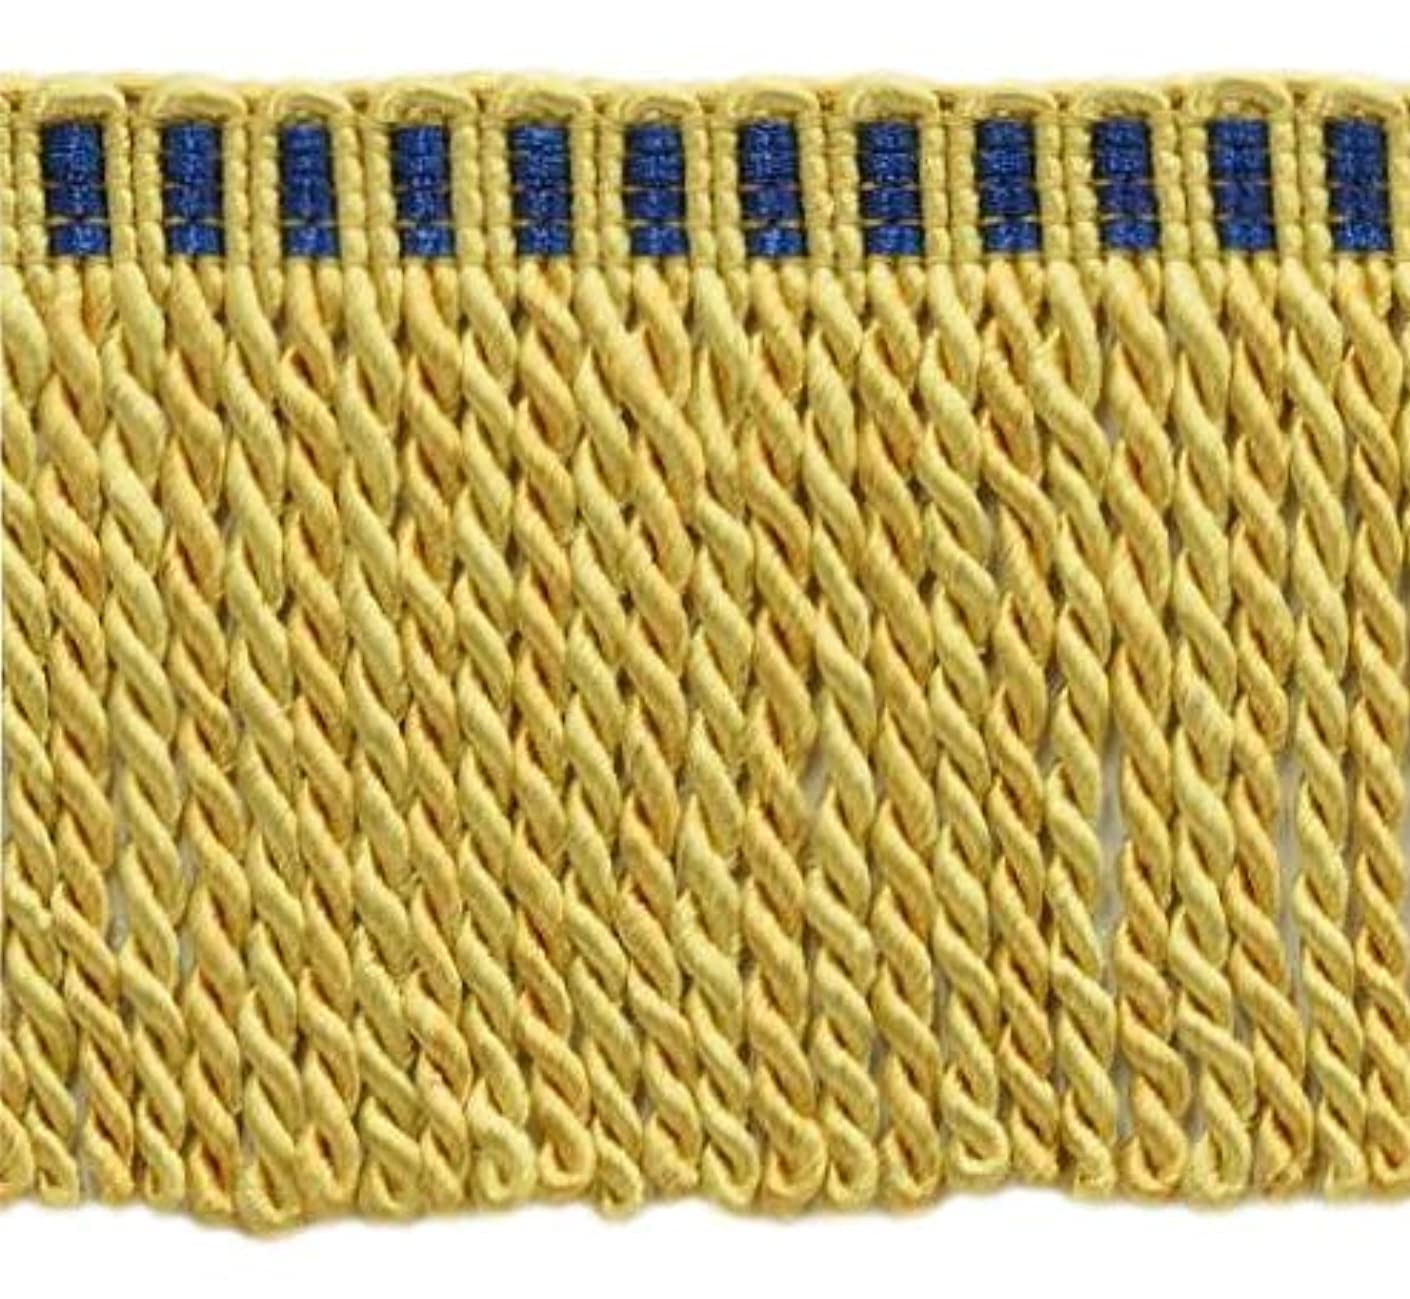 DecoPro 16 Feet Value Pack of 3 Inch Long Bullion Fringe Trim, Style# DB3 - Medium and Light Gold with Blue Header 4875T (5.4 Yards / 5 Meters)